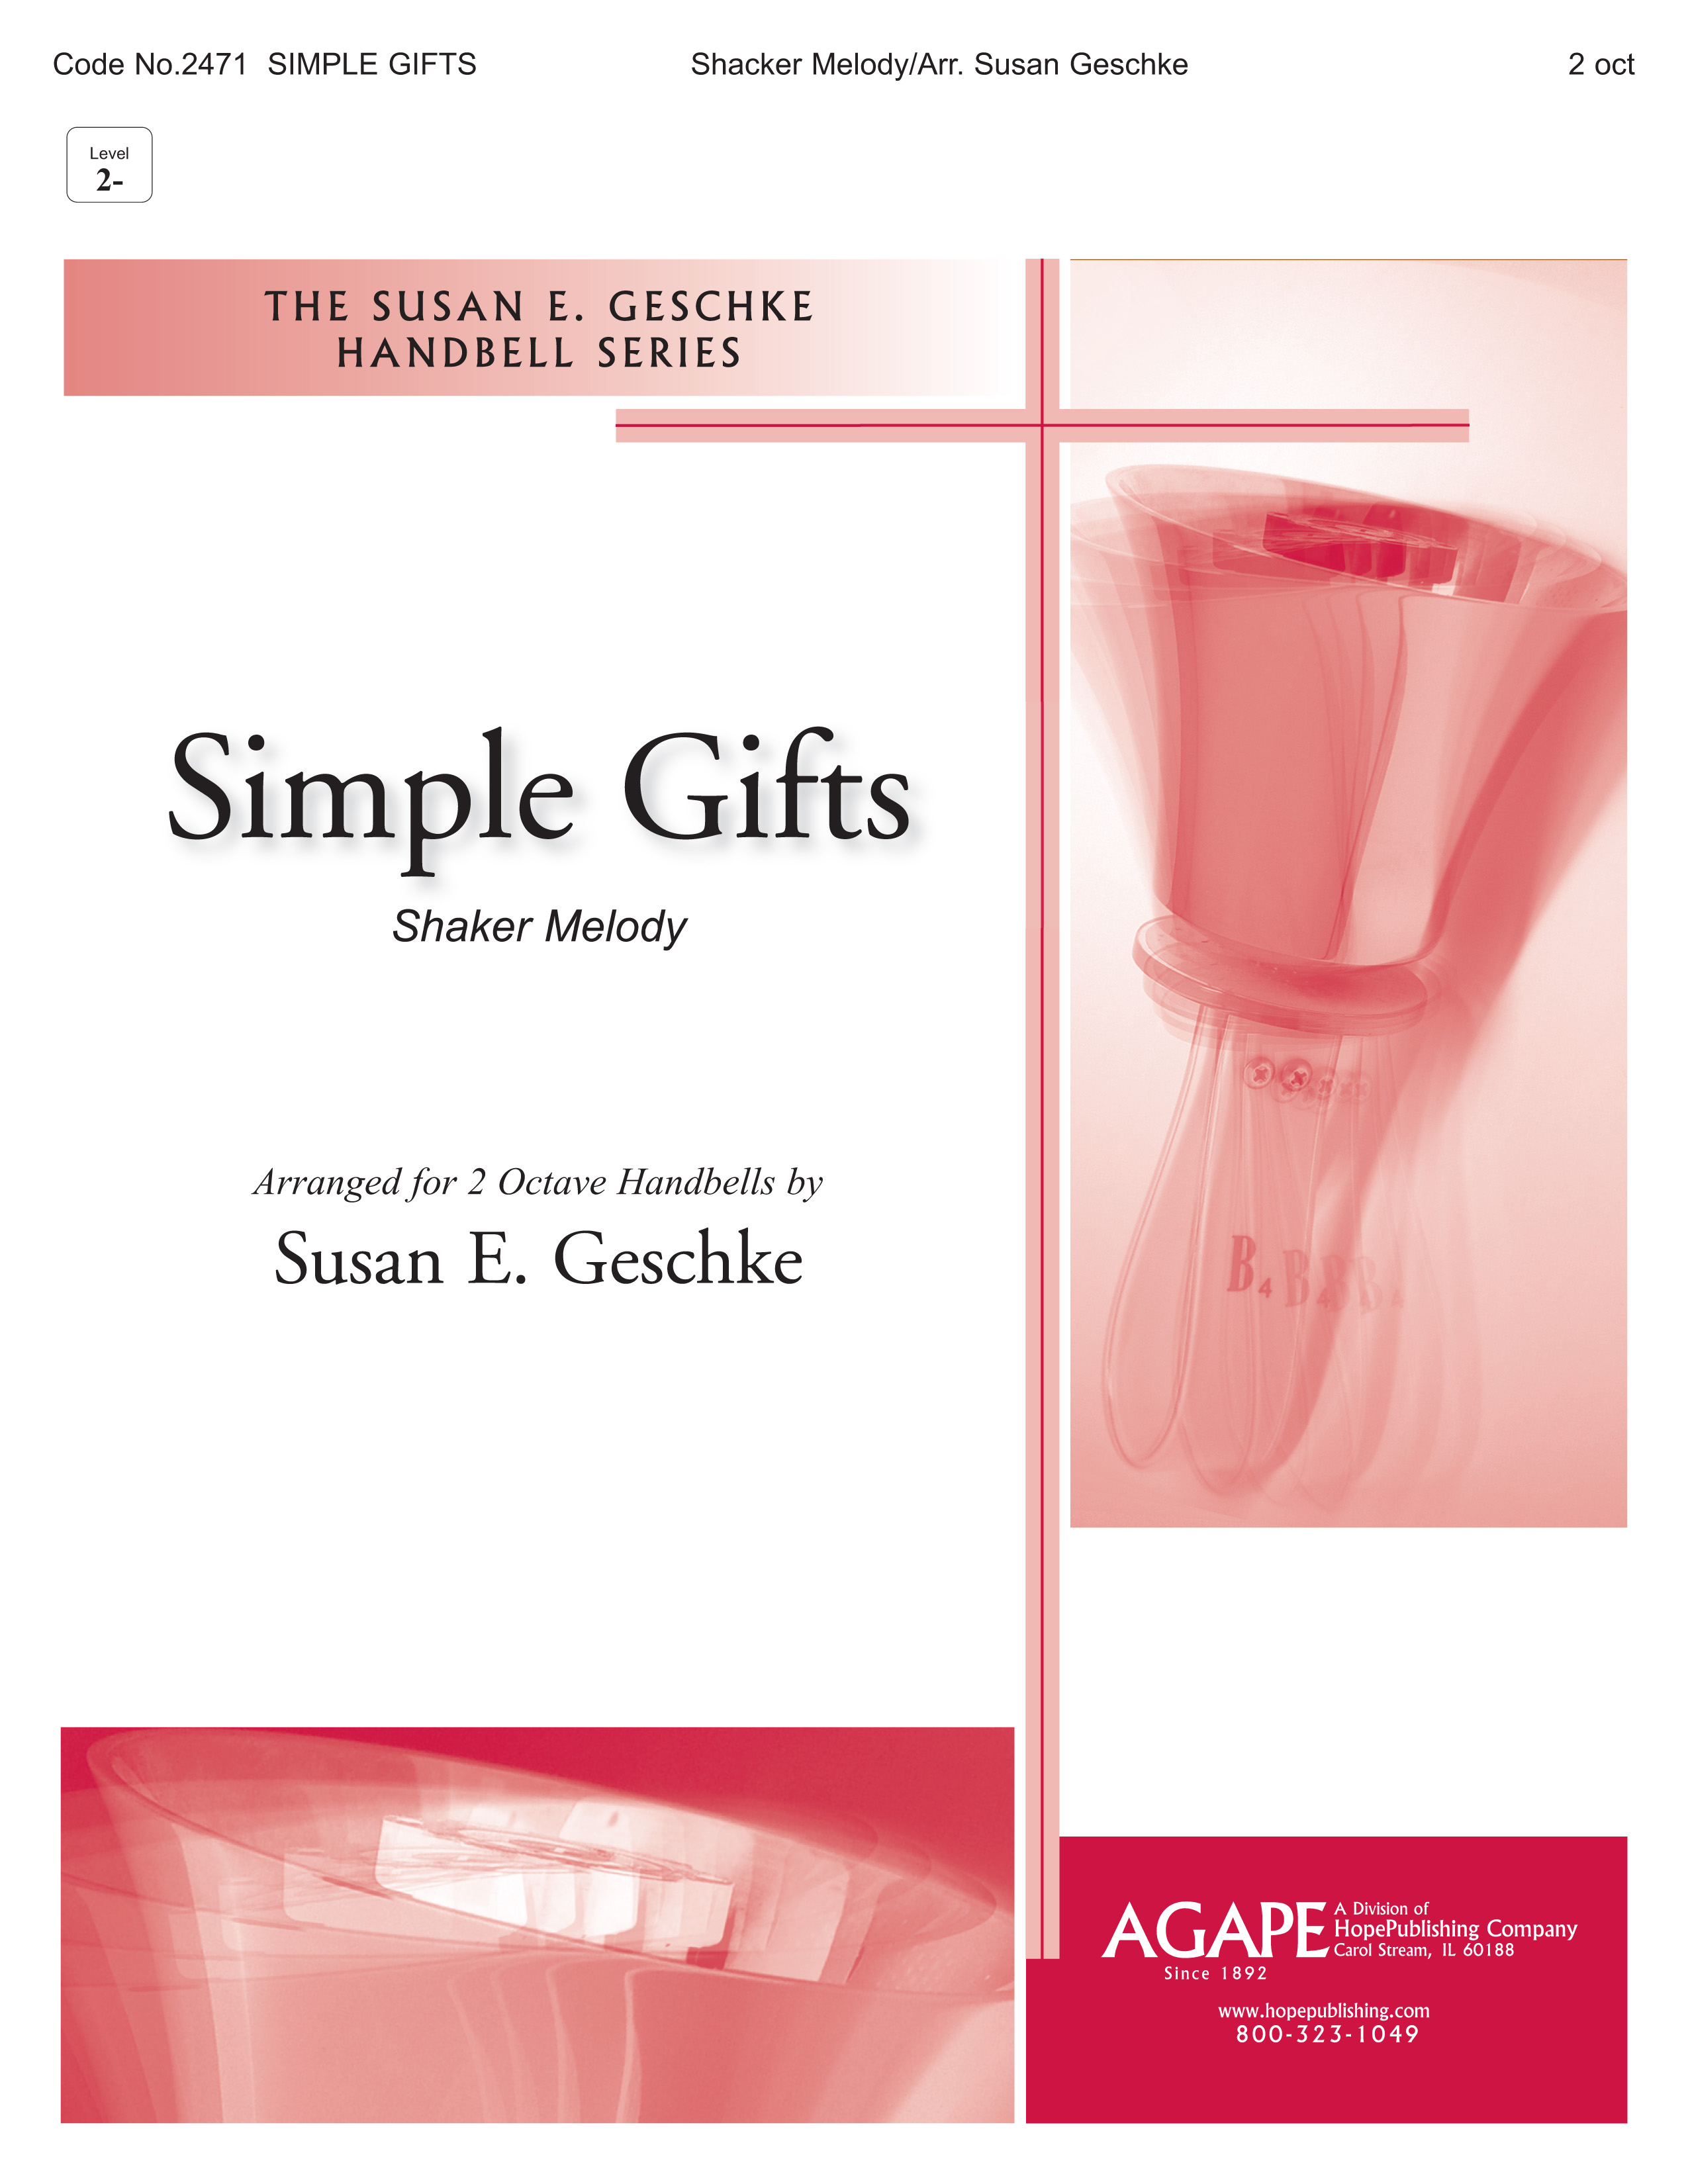 Simple Gifts - 2 oct. Cover Image